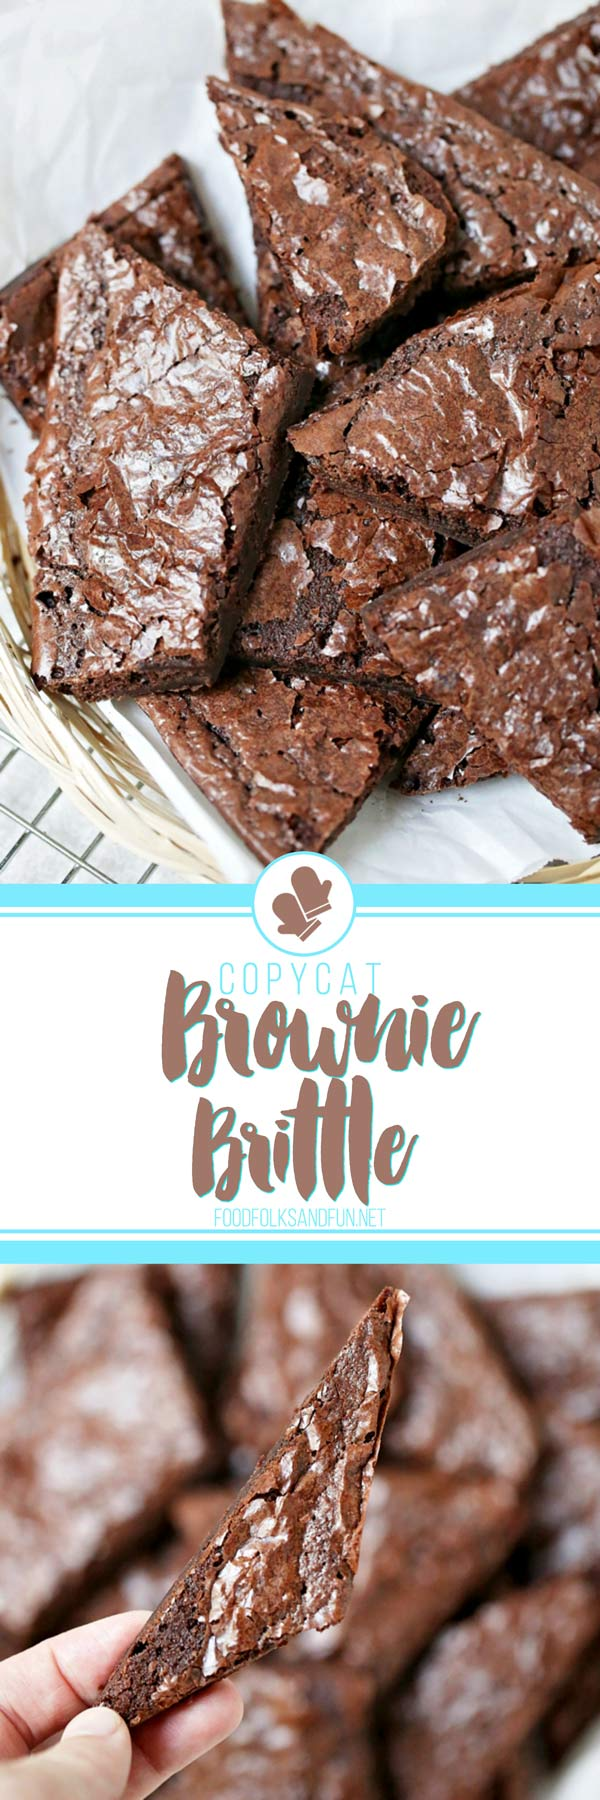 Quick and Easy Copycat Brownie Brittle recipe!